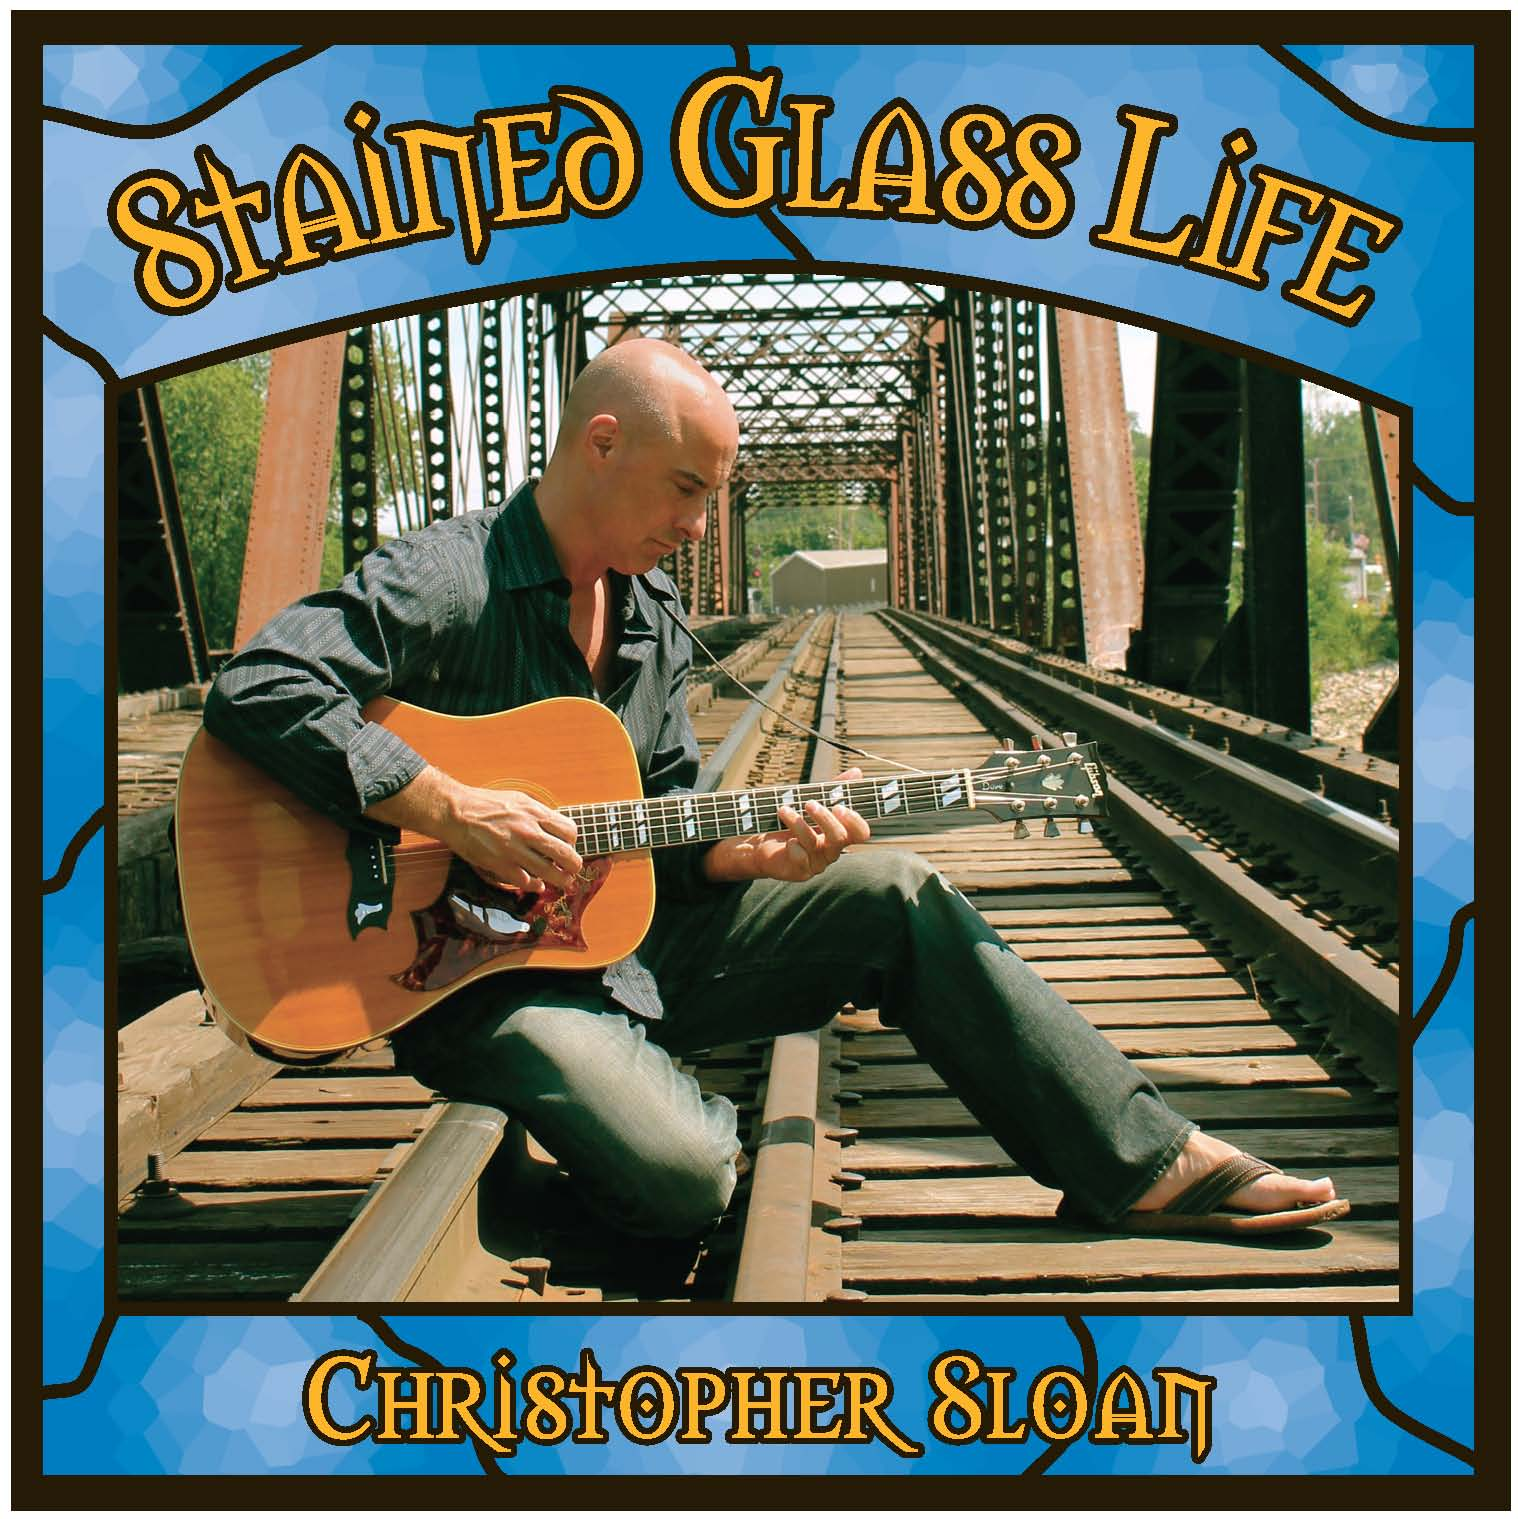 Stained Glass Life Front Cover.jpg